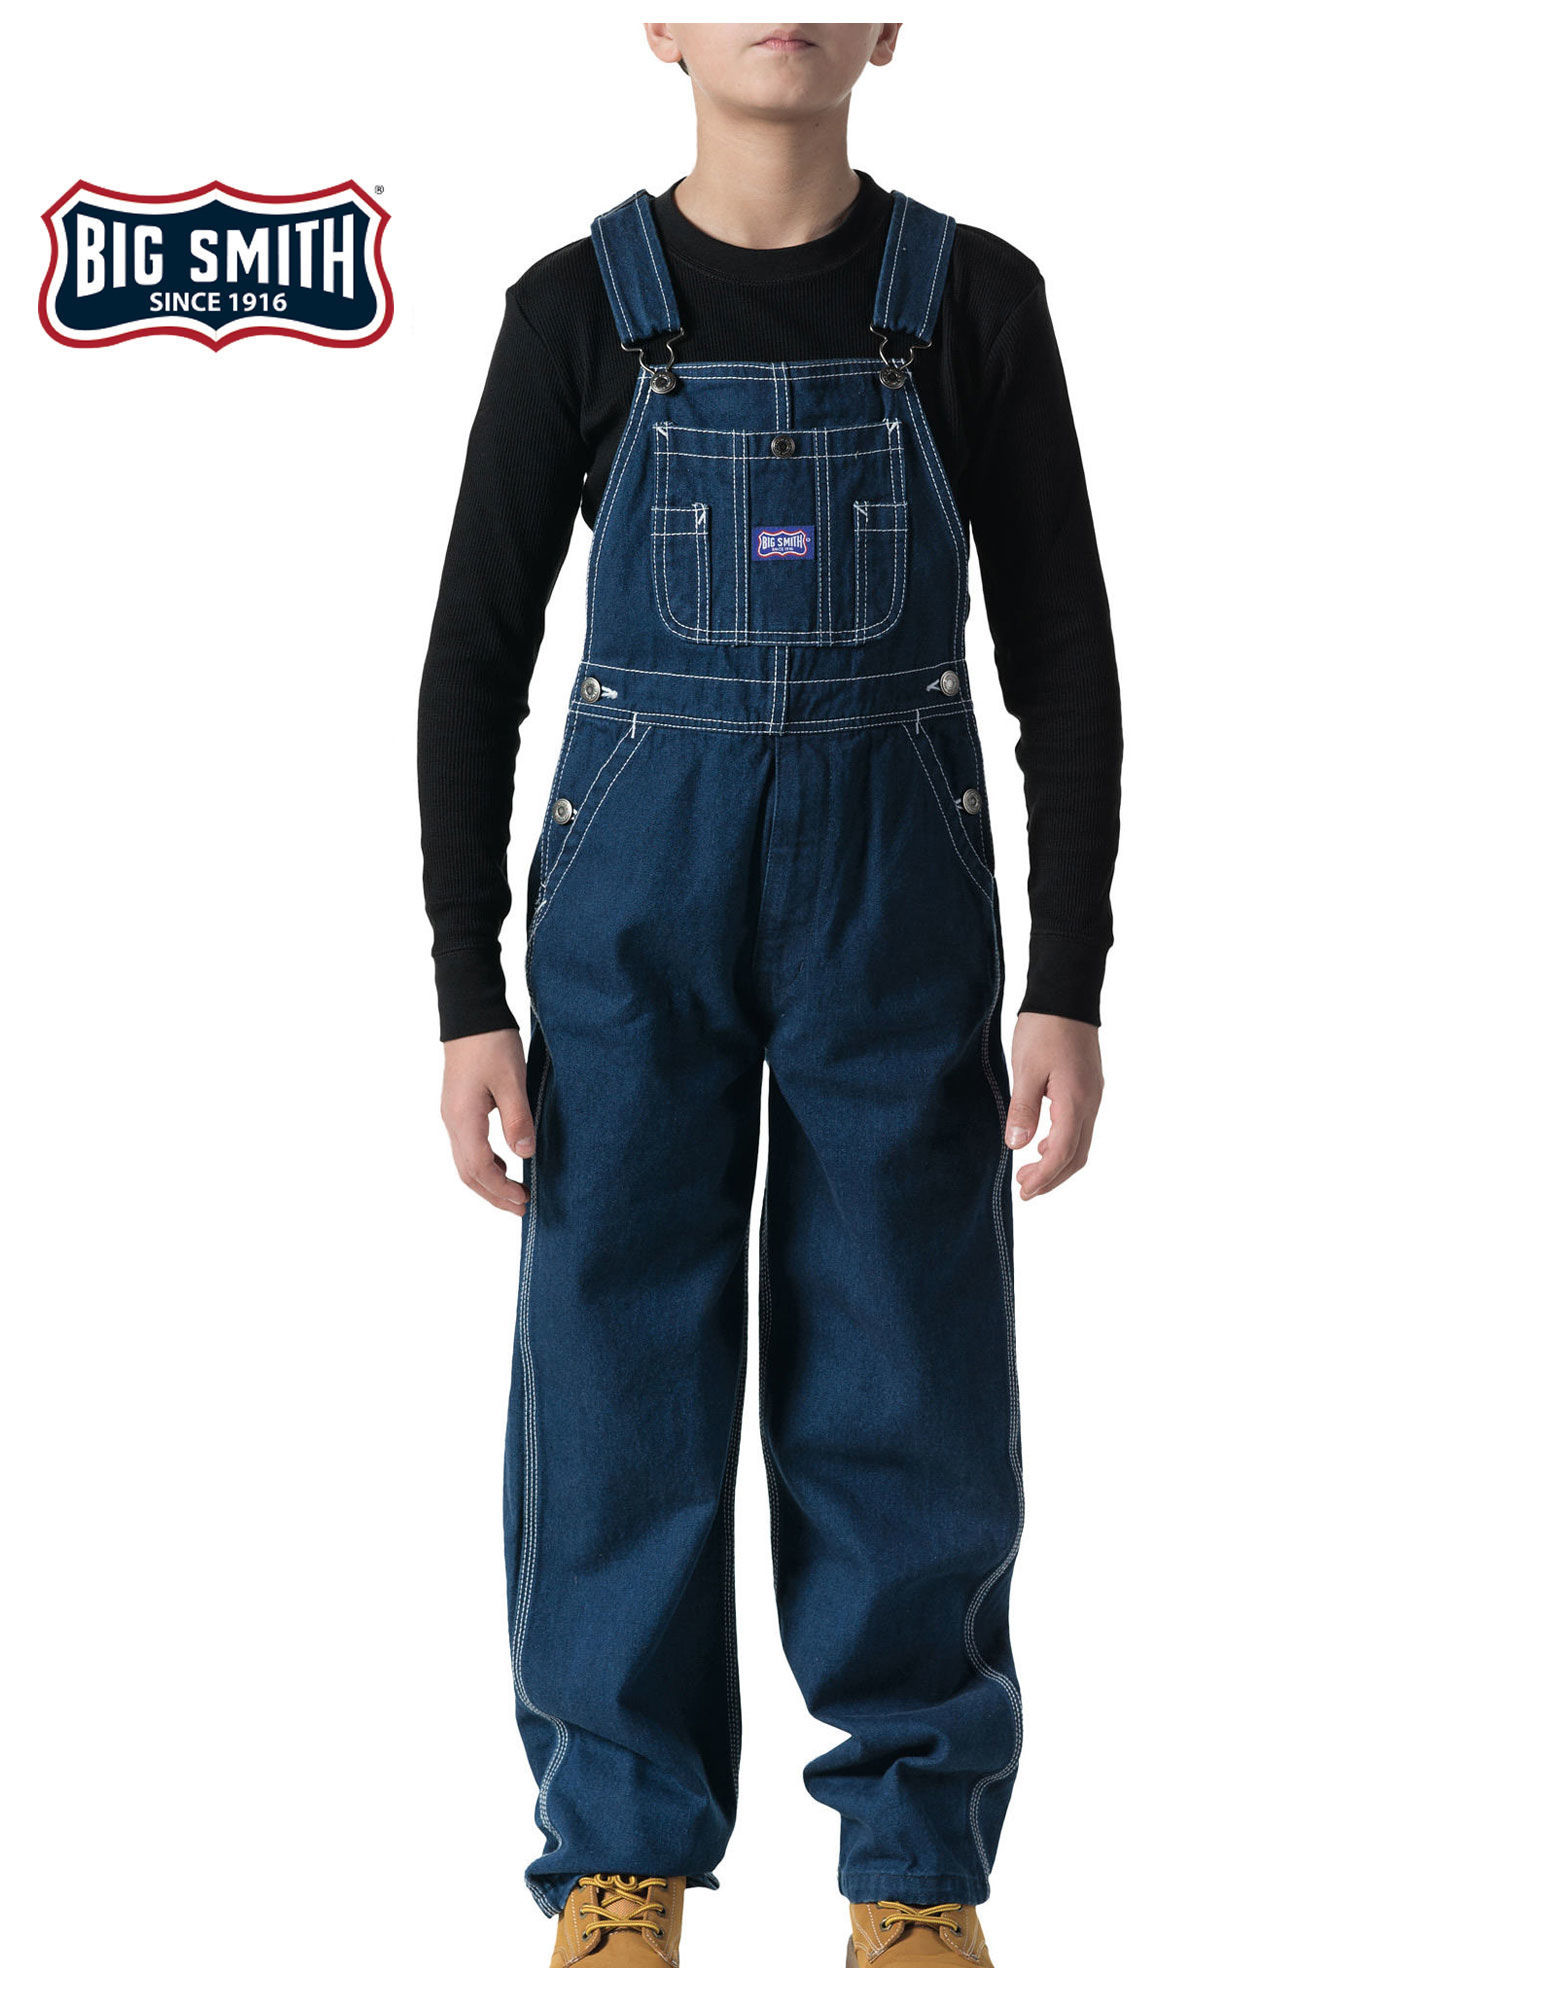 Big Smith Youth Boy Bib Overalls